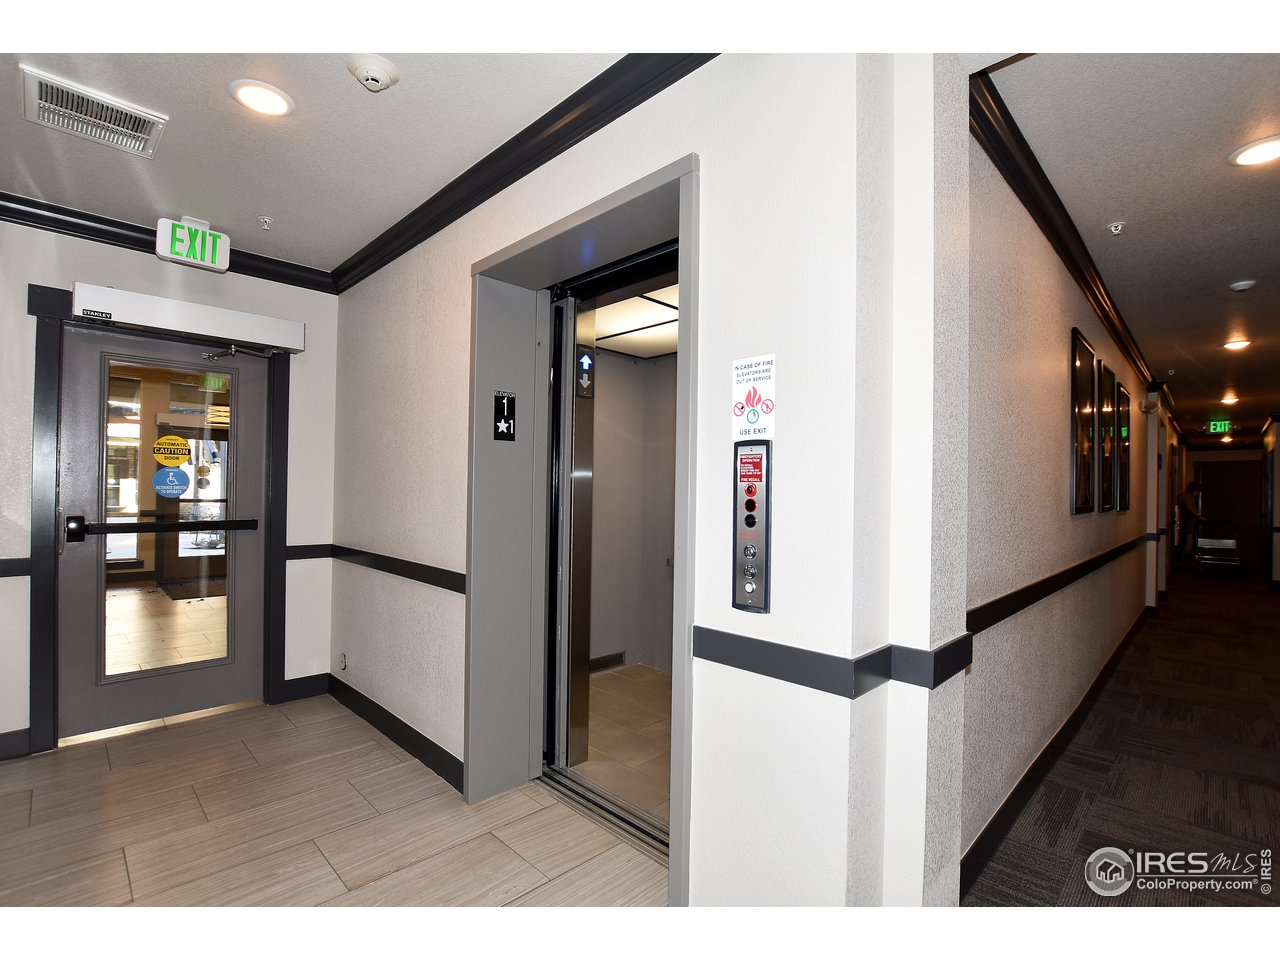 Elevator service up to the unit. Also 2 back secured stairwells for added convenience in the back of the building